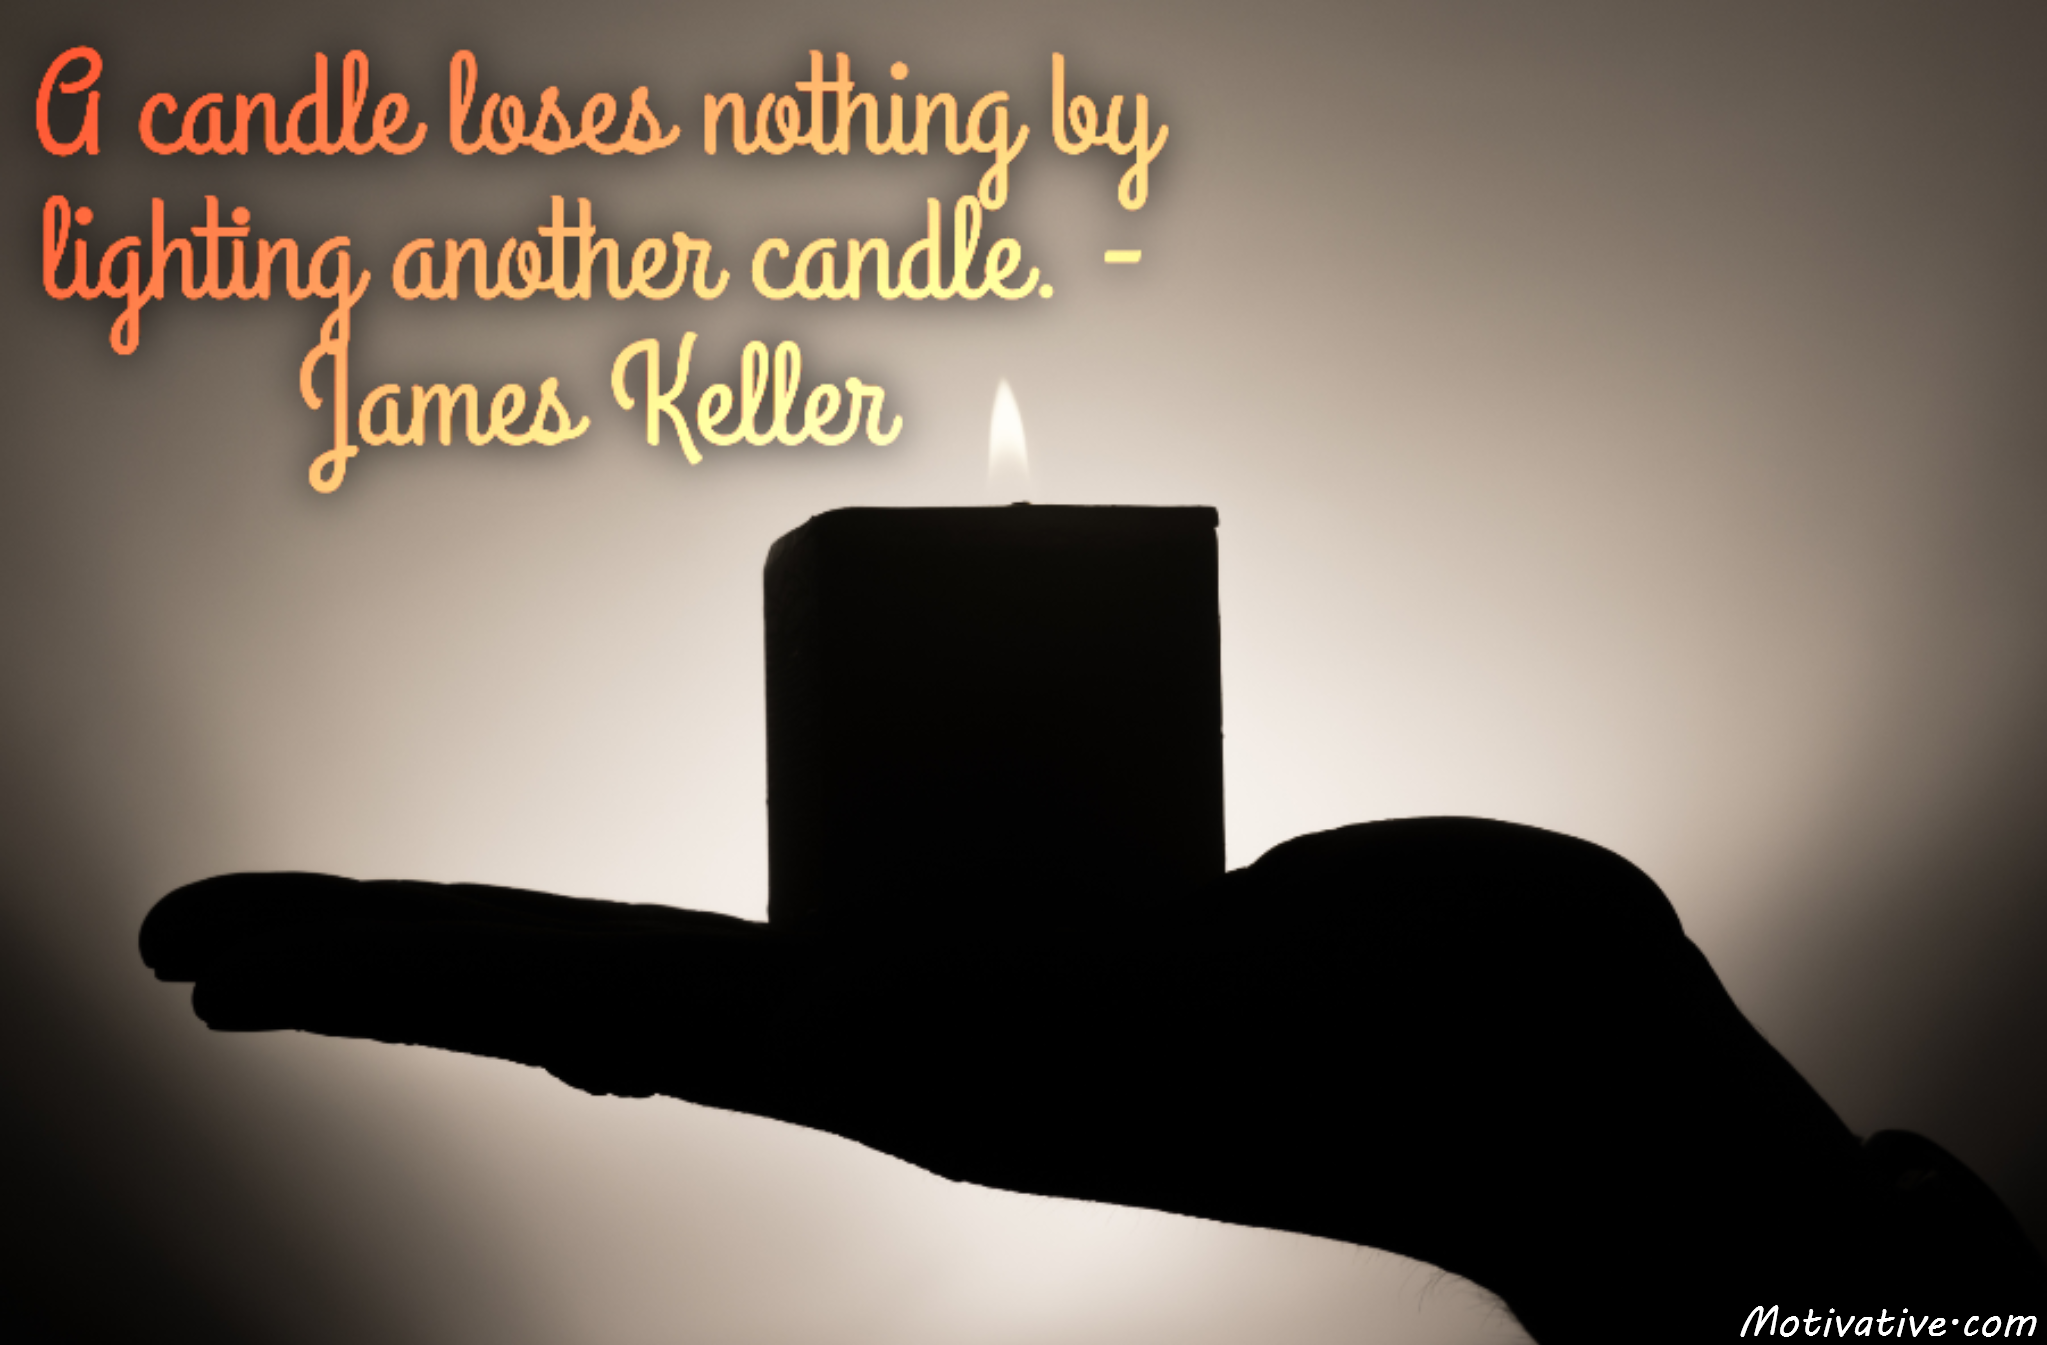 A candle loses nothing by lighting another candle. – James Keller